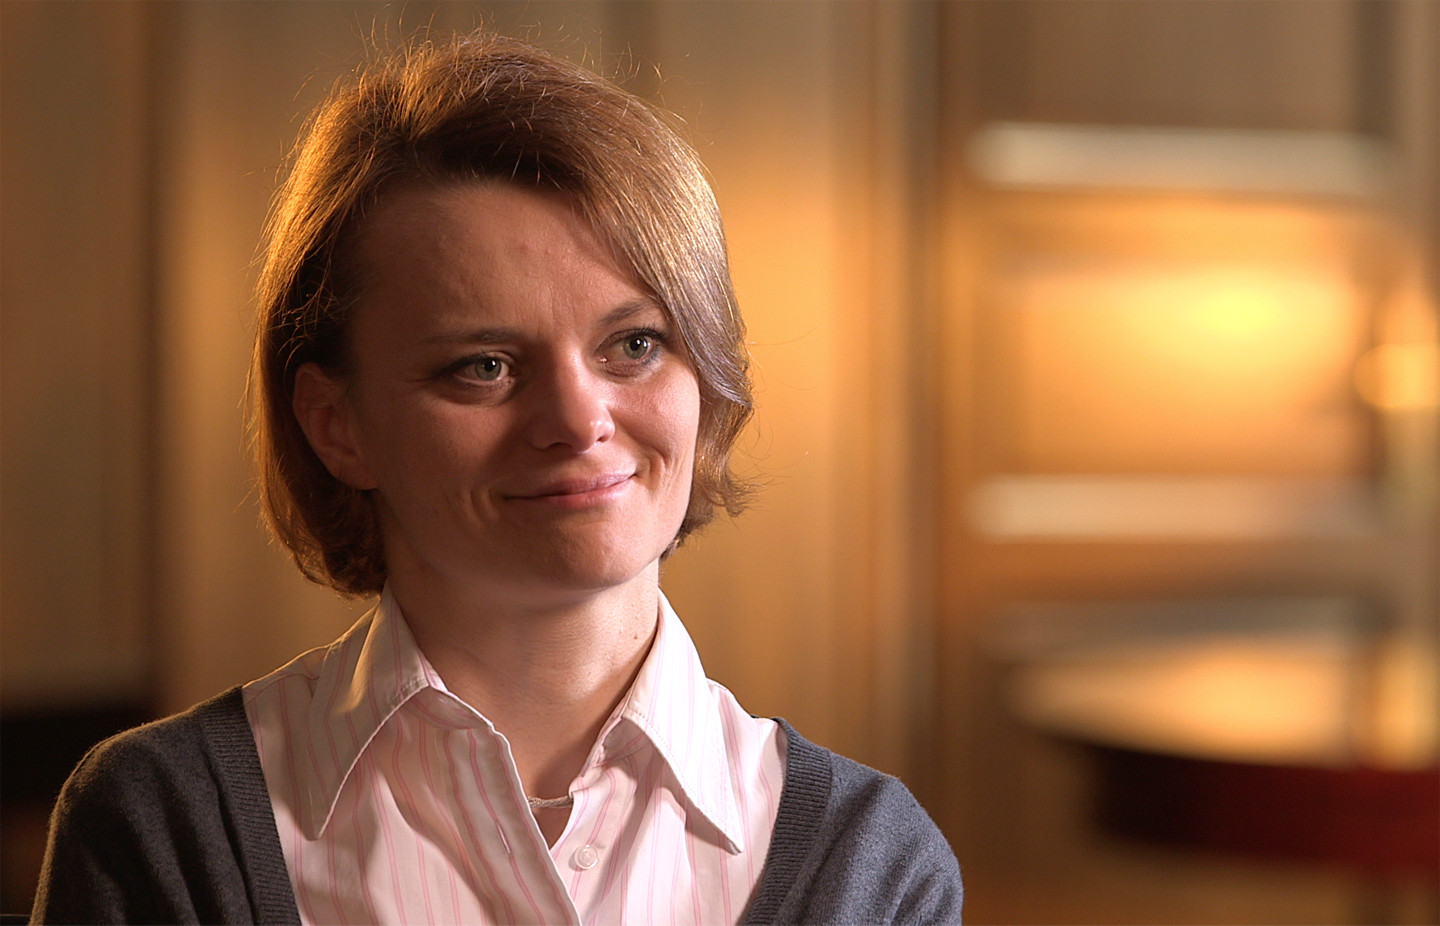 Jadwiga Emilewicz interviewee on John Paul II: Liberating a Continent, Fall of Communism.